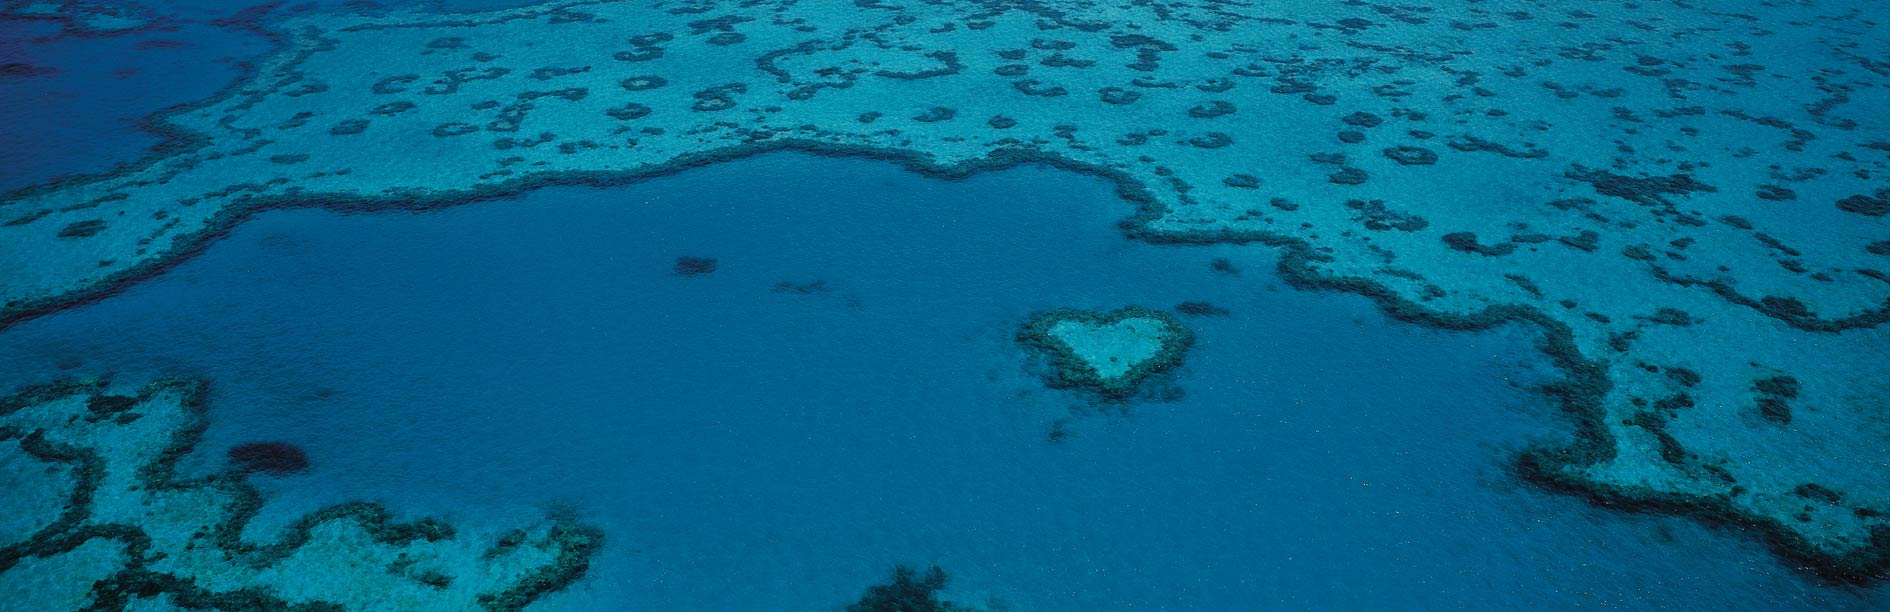 Heart Reef, Whitsundays Queensland Australia